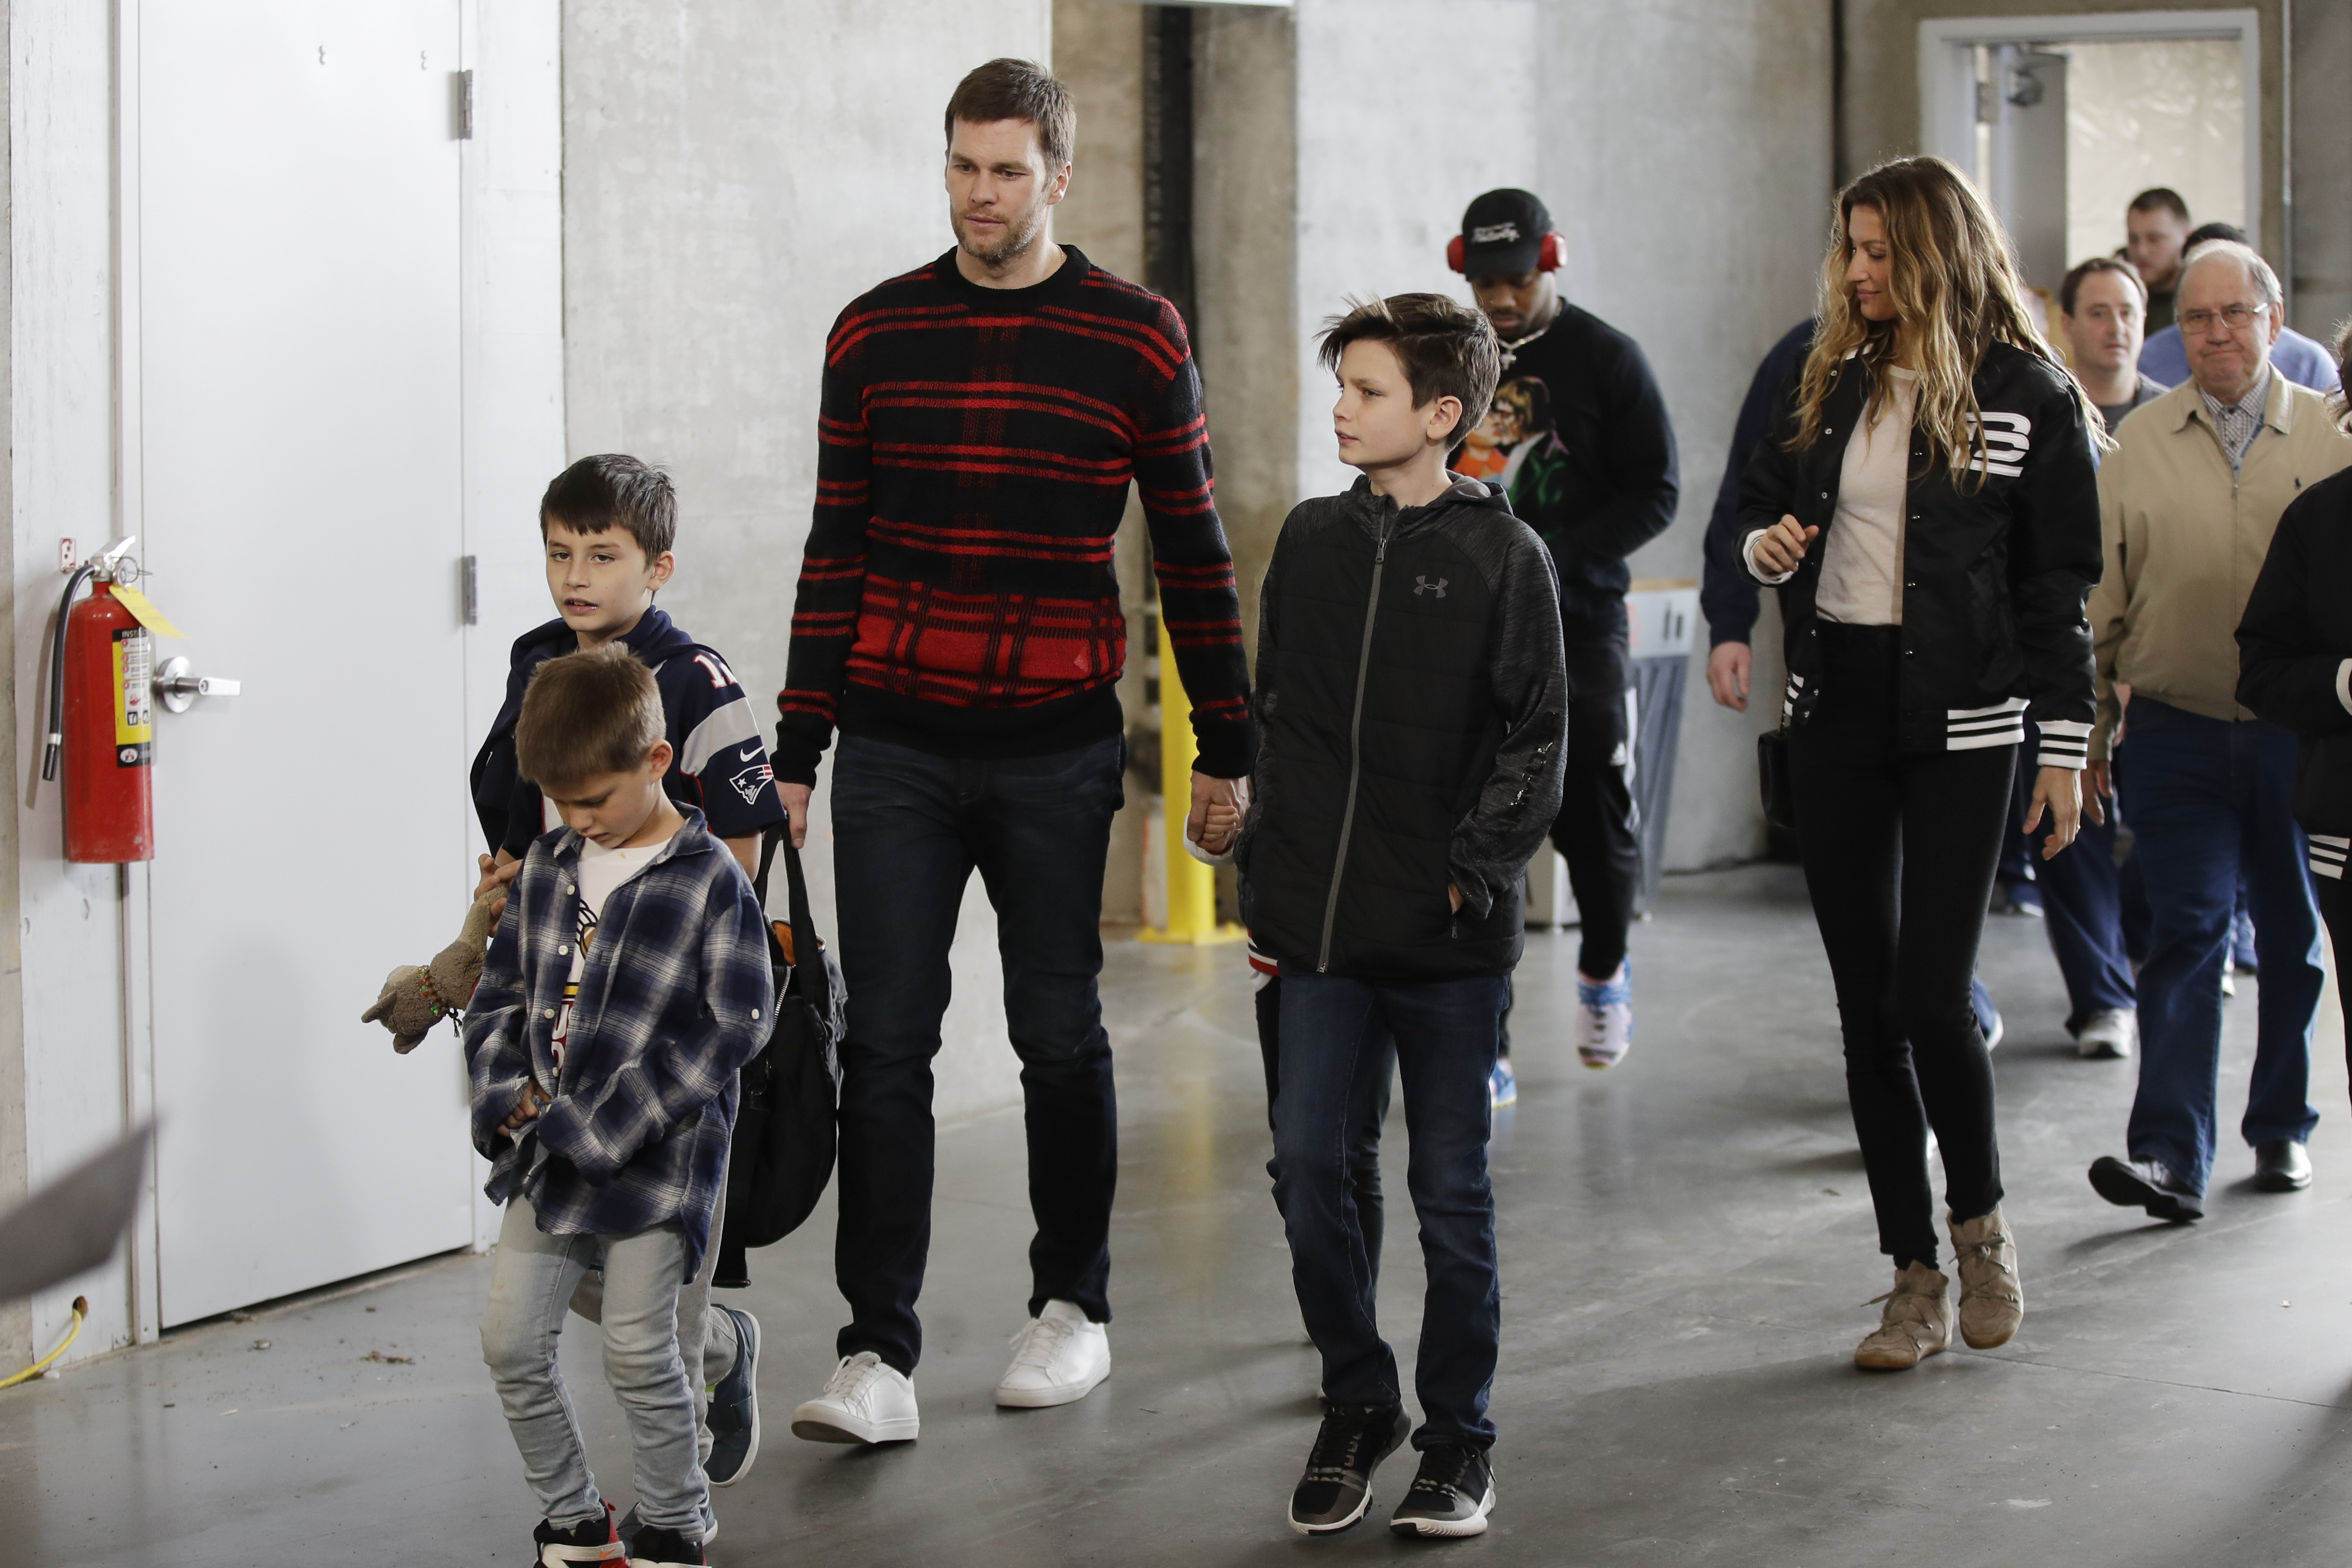 Yes Tom Brady S Family Did Their Annual Super Bowl Photos The Boston Globe